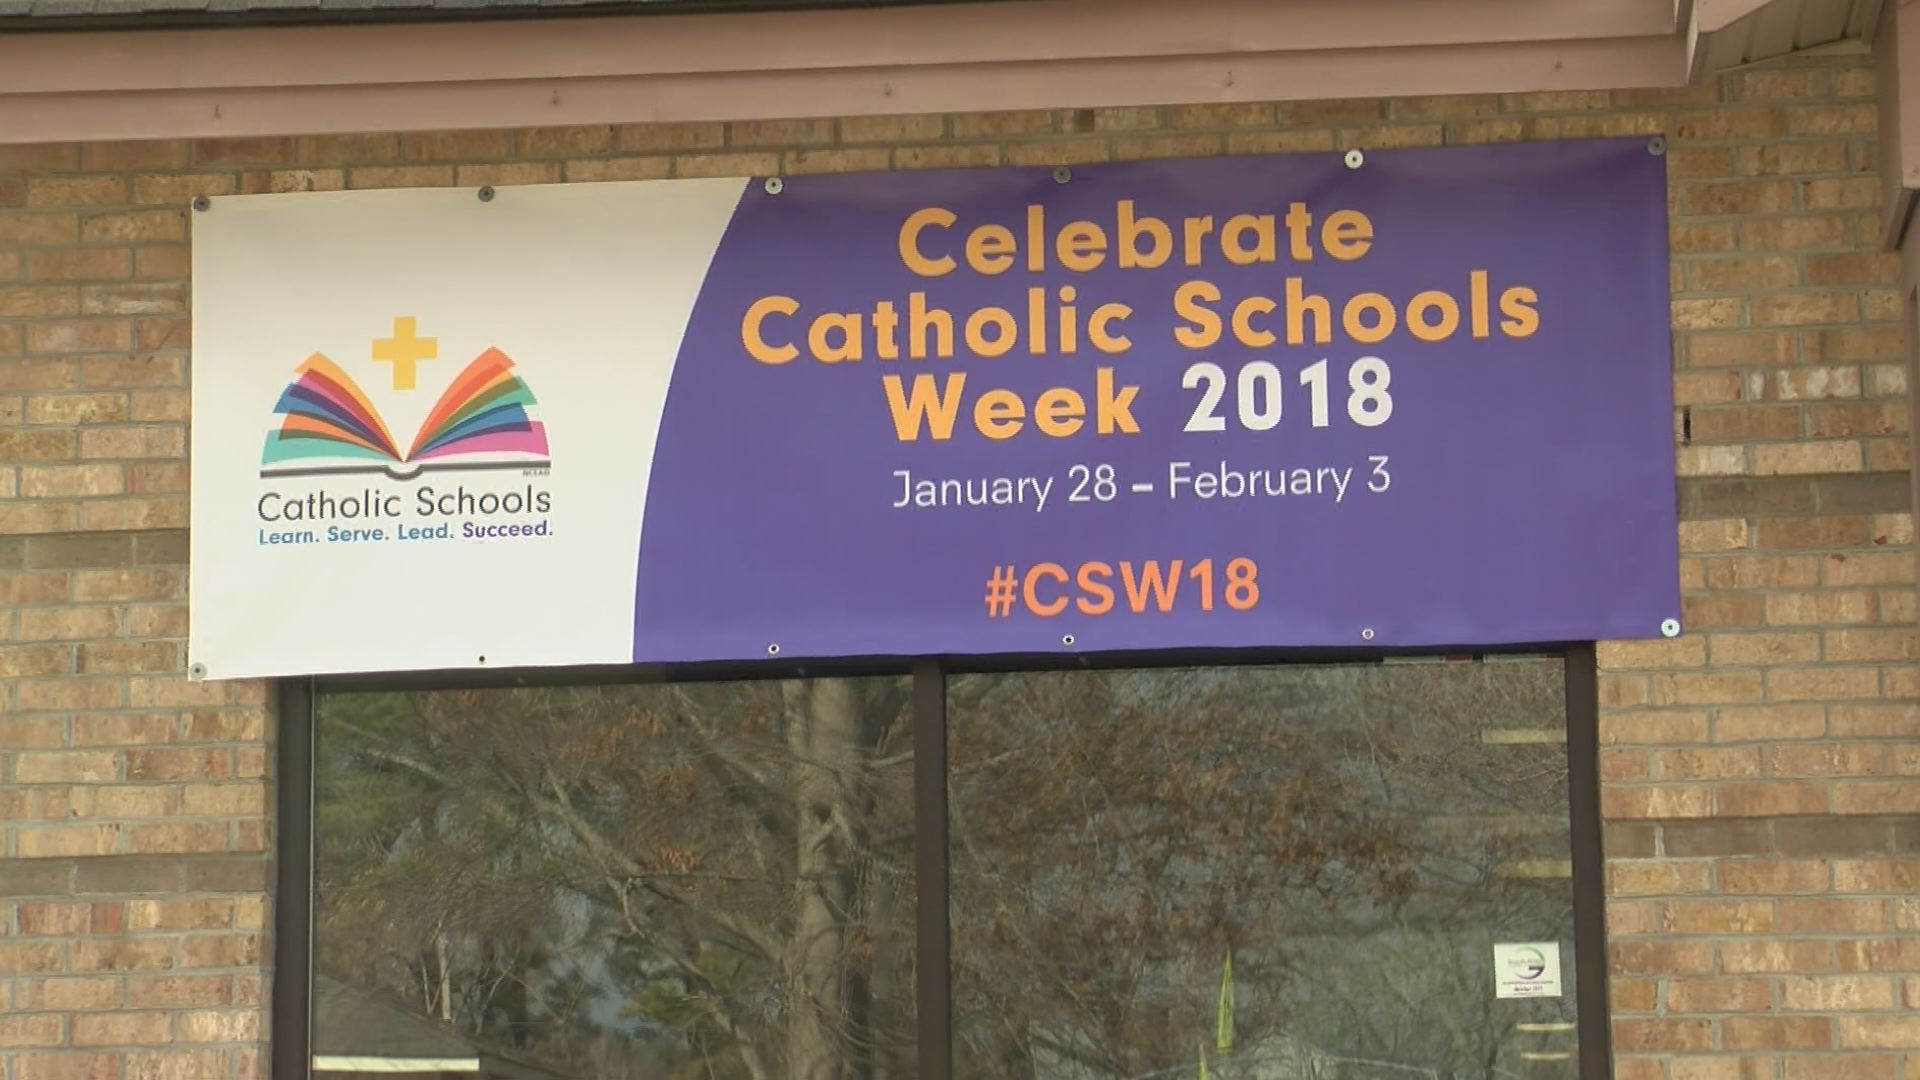 Local Schools Plan Events And Activities As Part Of Catholic Schools Week